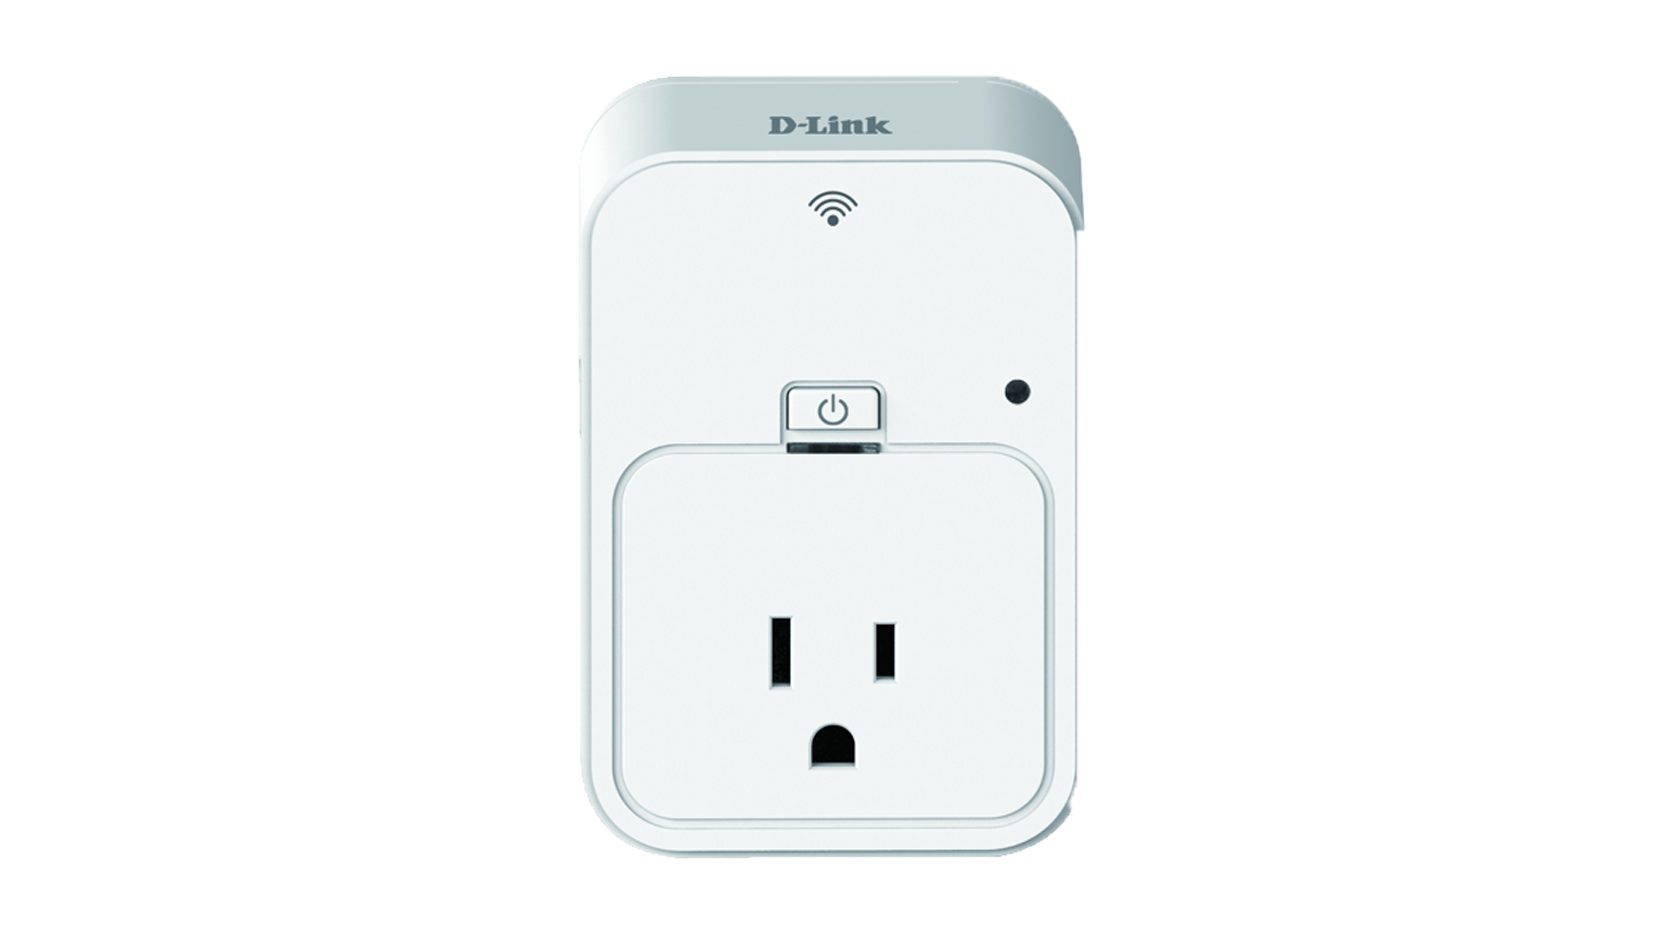 D-Link releases Wi-Fi Smart Plug Brings the Connected Home